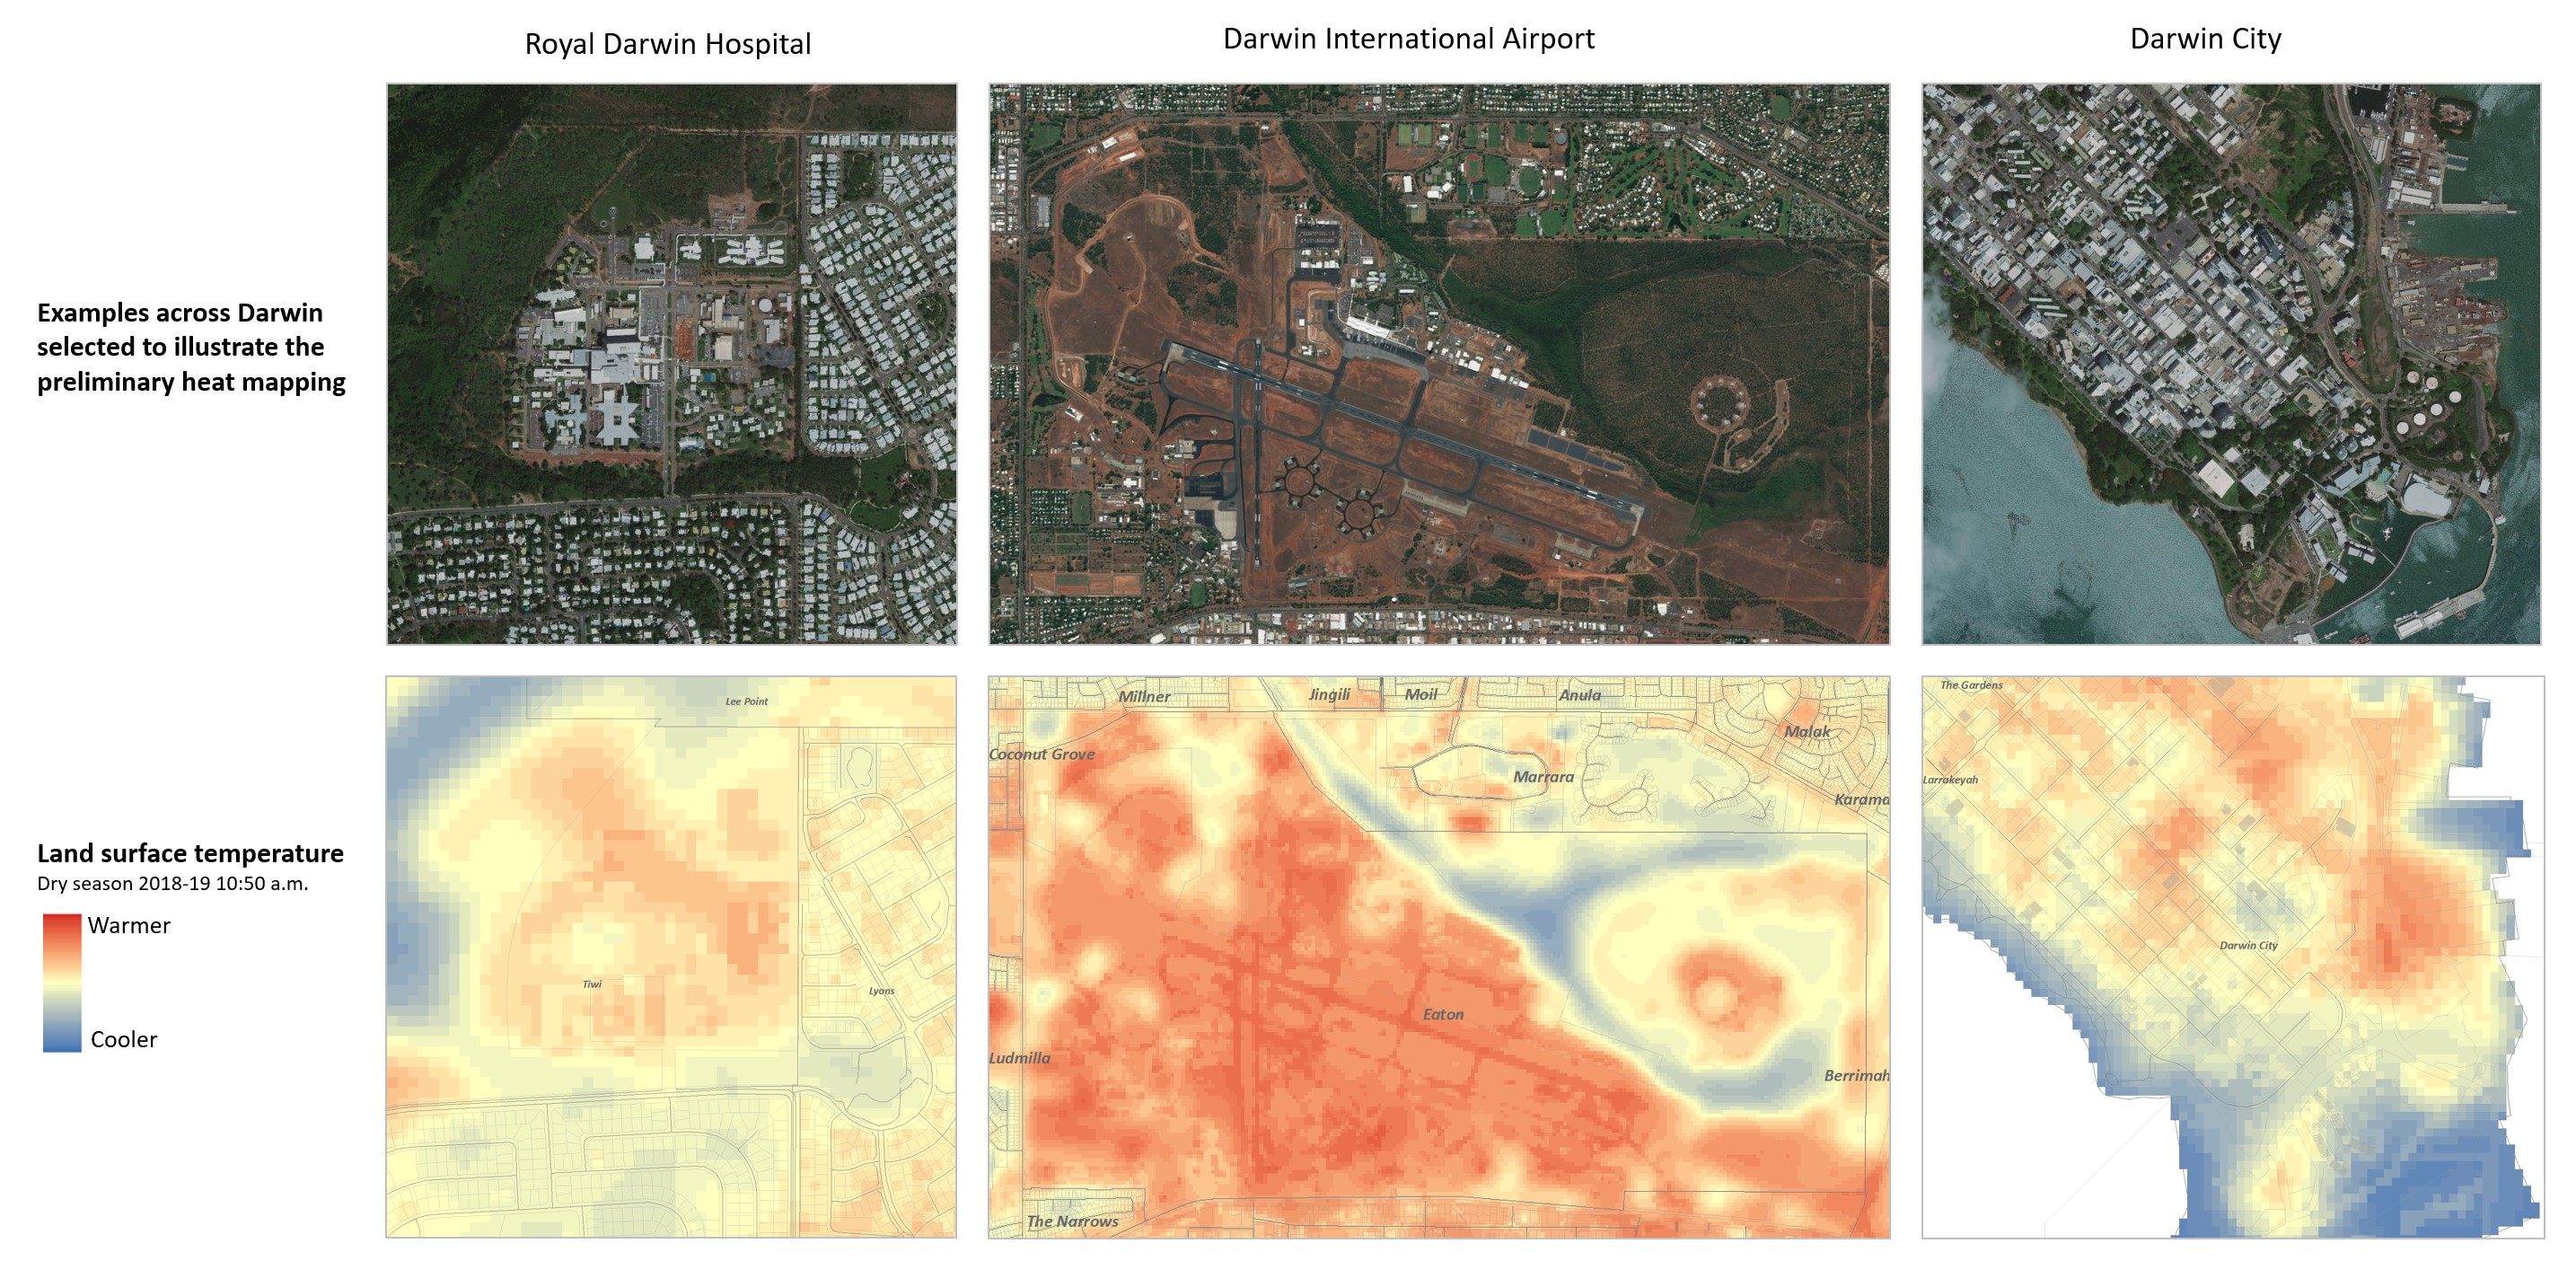 Satellite image comparison showing parts of Darwin in normal visible view, and the same areas ovelaid with heat mapping technology.